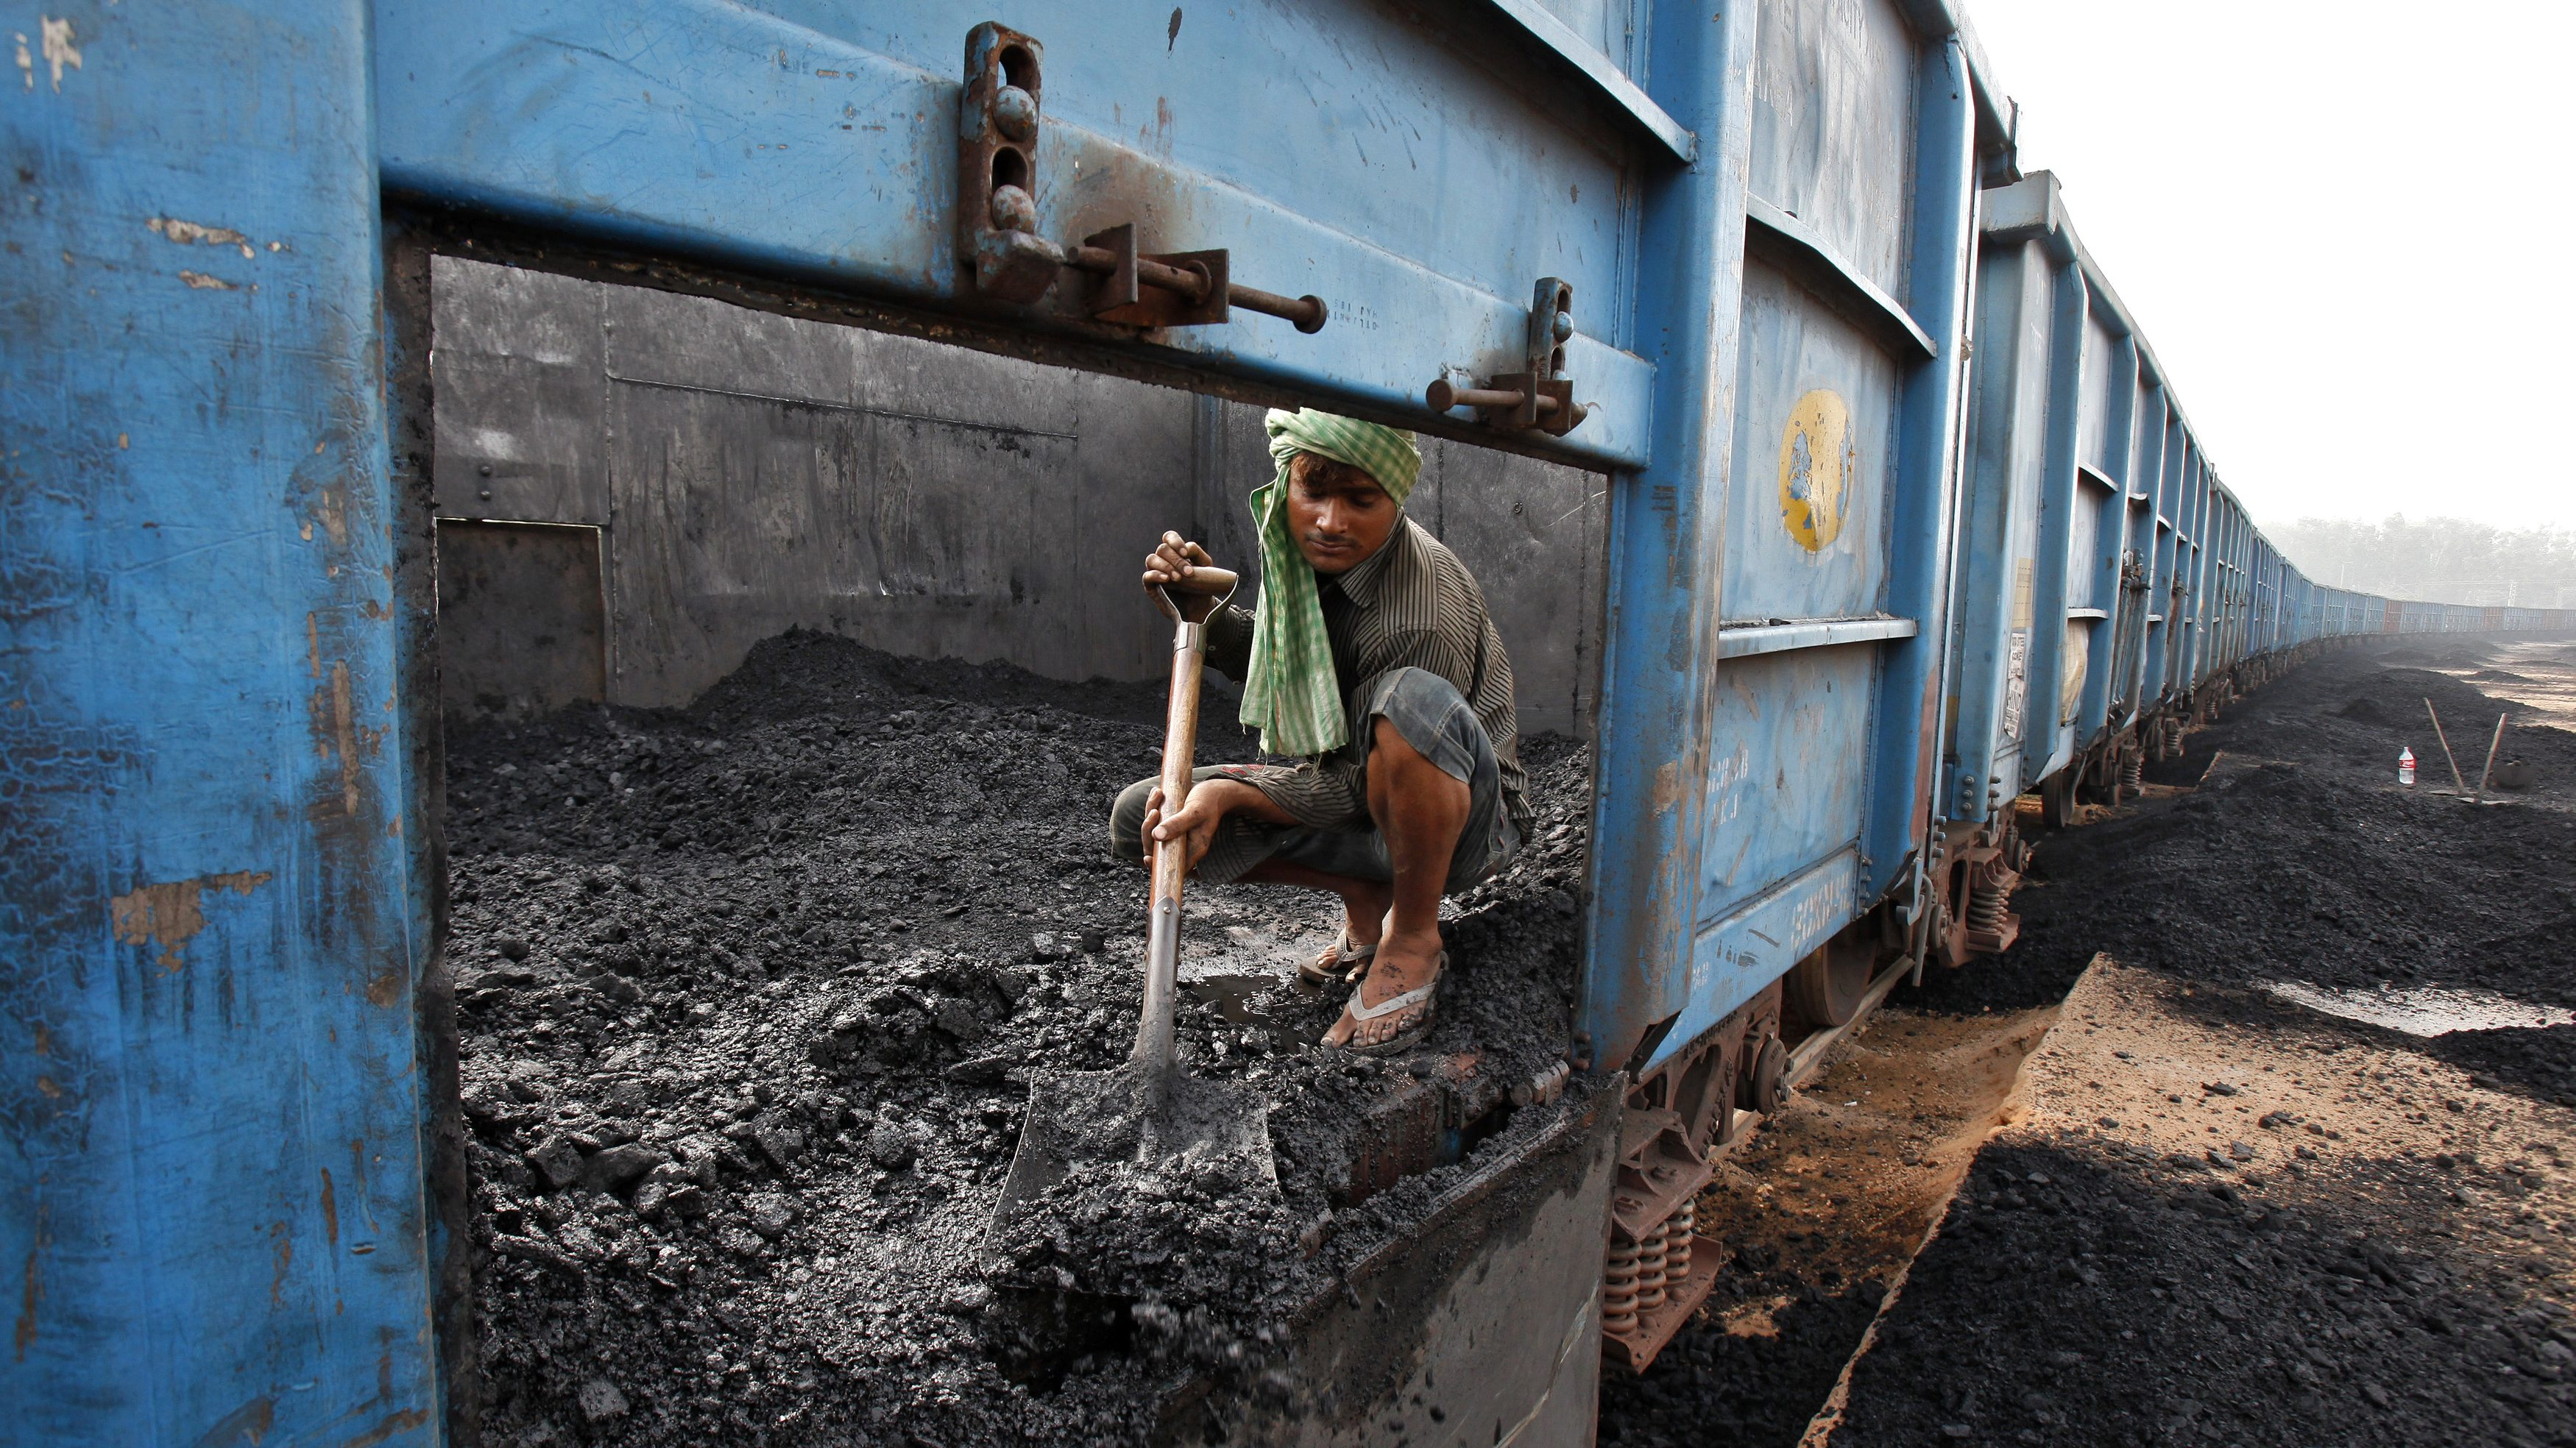 Worker unloads coal from a goods train at a railway yard in Chandigarh